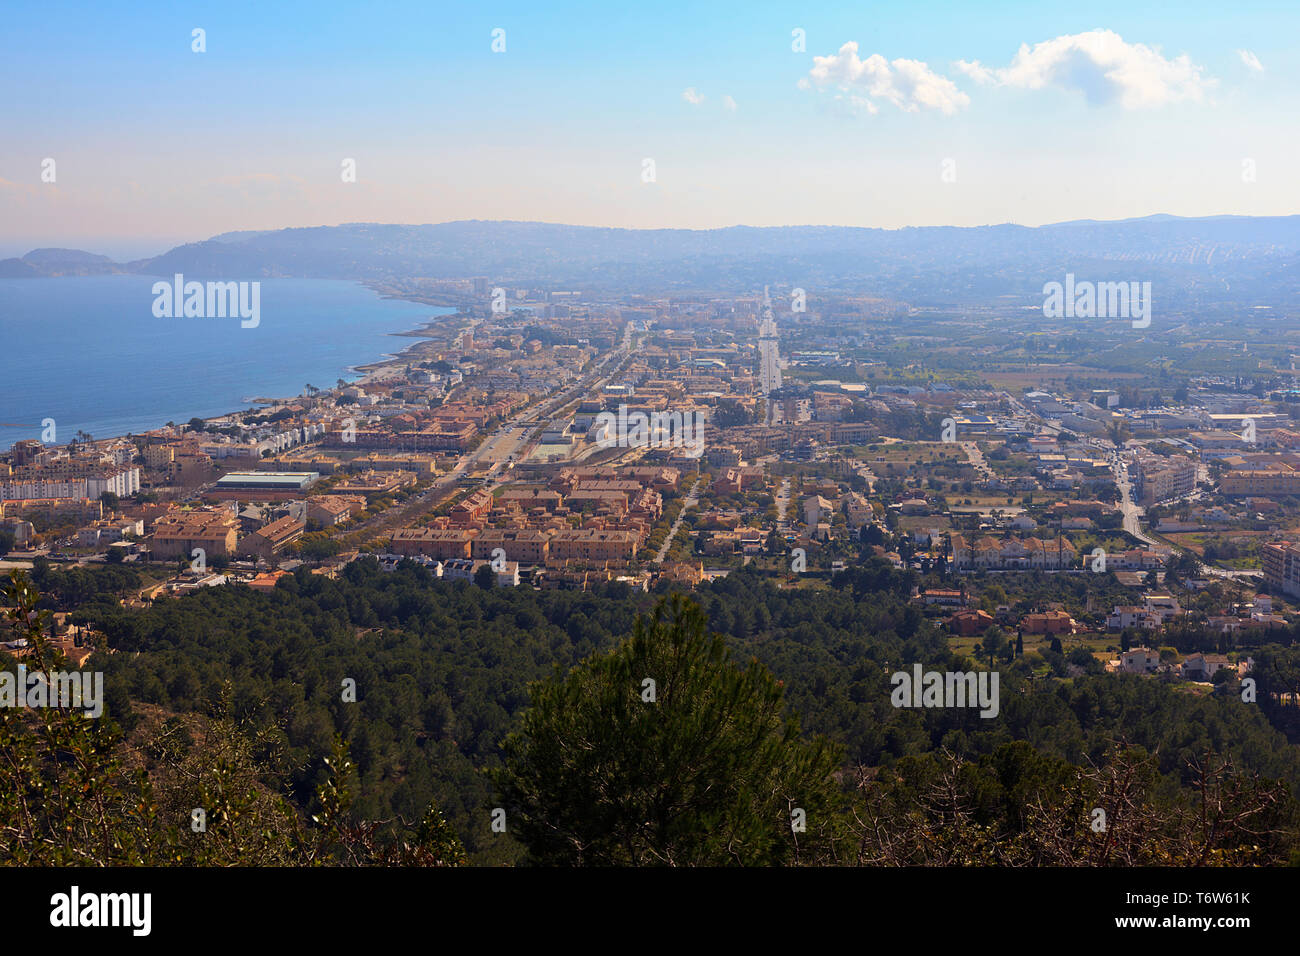 Misty view from the Hieghts of La Plana overlooking Javea town in the Costa Blanca, Spain - Stock Image